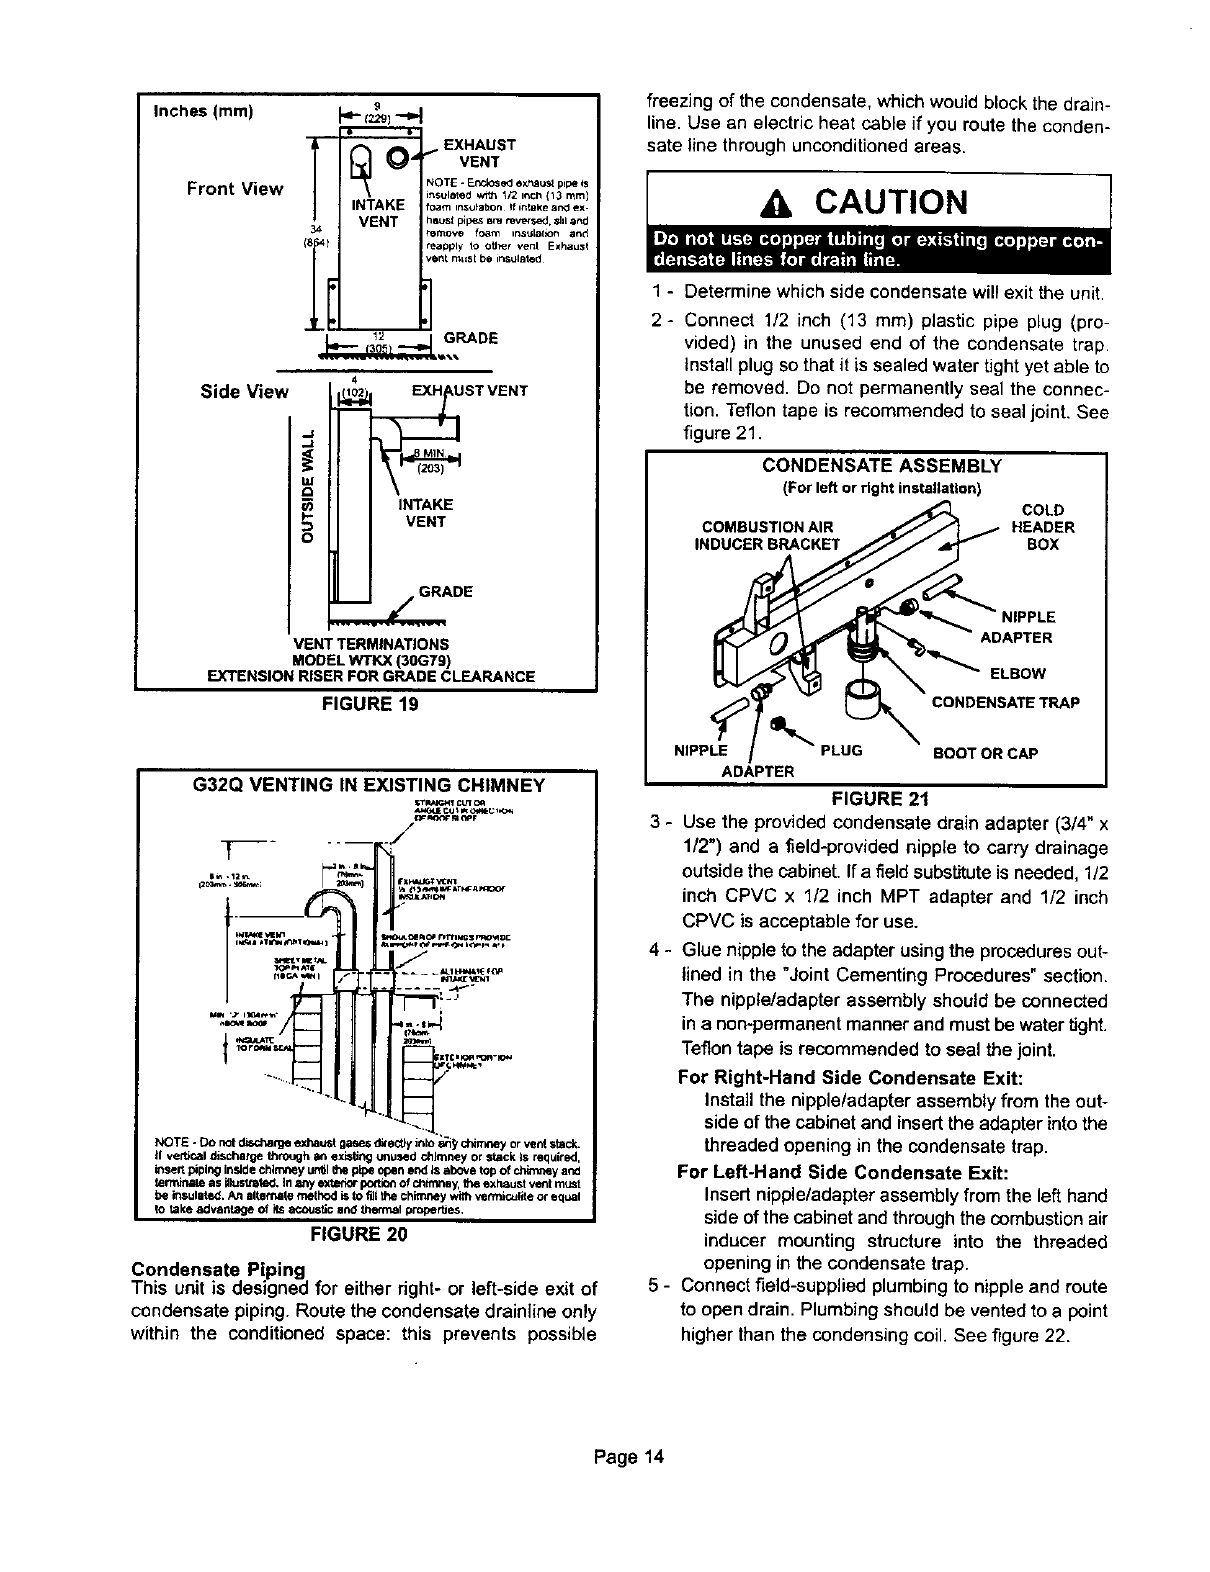 Page 14 of Lennox International Inc. Furnace G32Q3-75 User